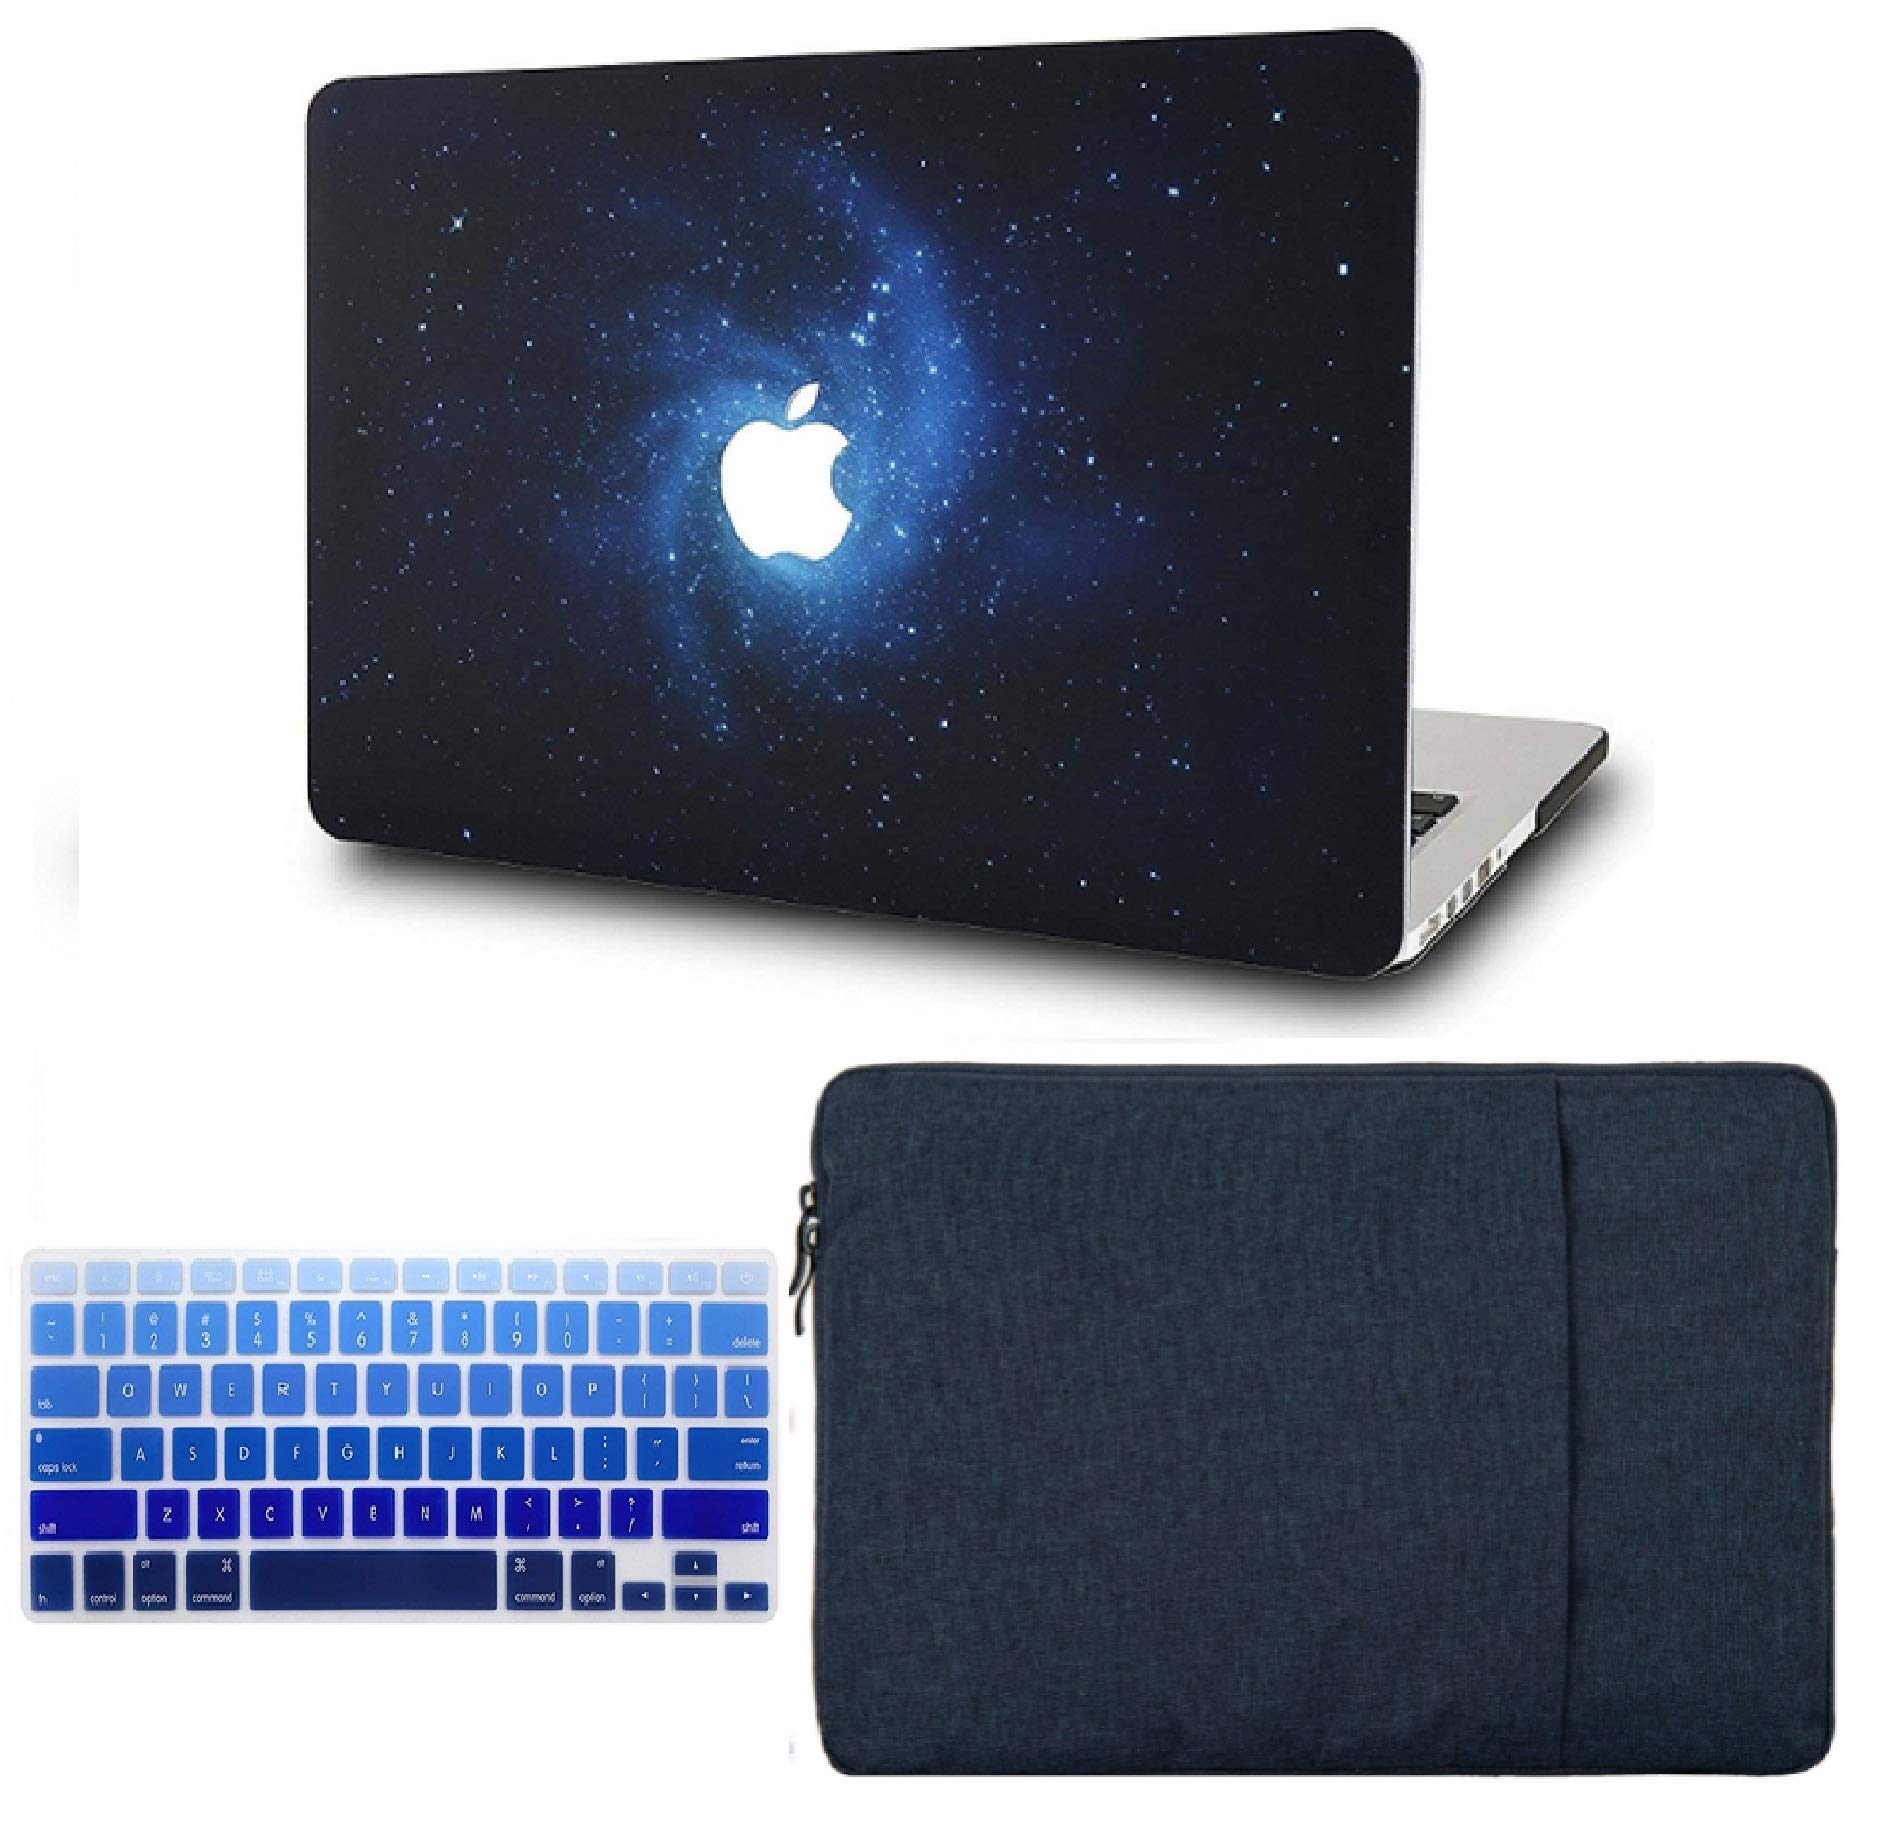 KECC Laptop Case for MacBook Pro 13'' (2019/2018/2017/2016, with/Without Touch Bar) w/Keyboard Cover + Sleeve Plastic Hard Shell Case A2159/A1989/A1706/A1708 3 in 1 Bundle (Blue) by KECC